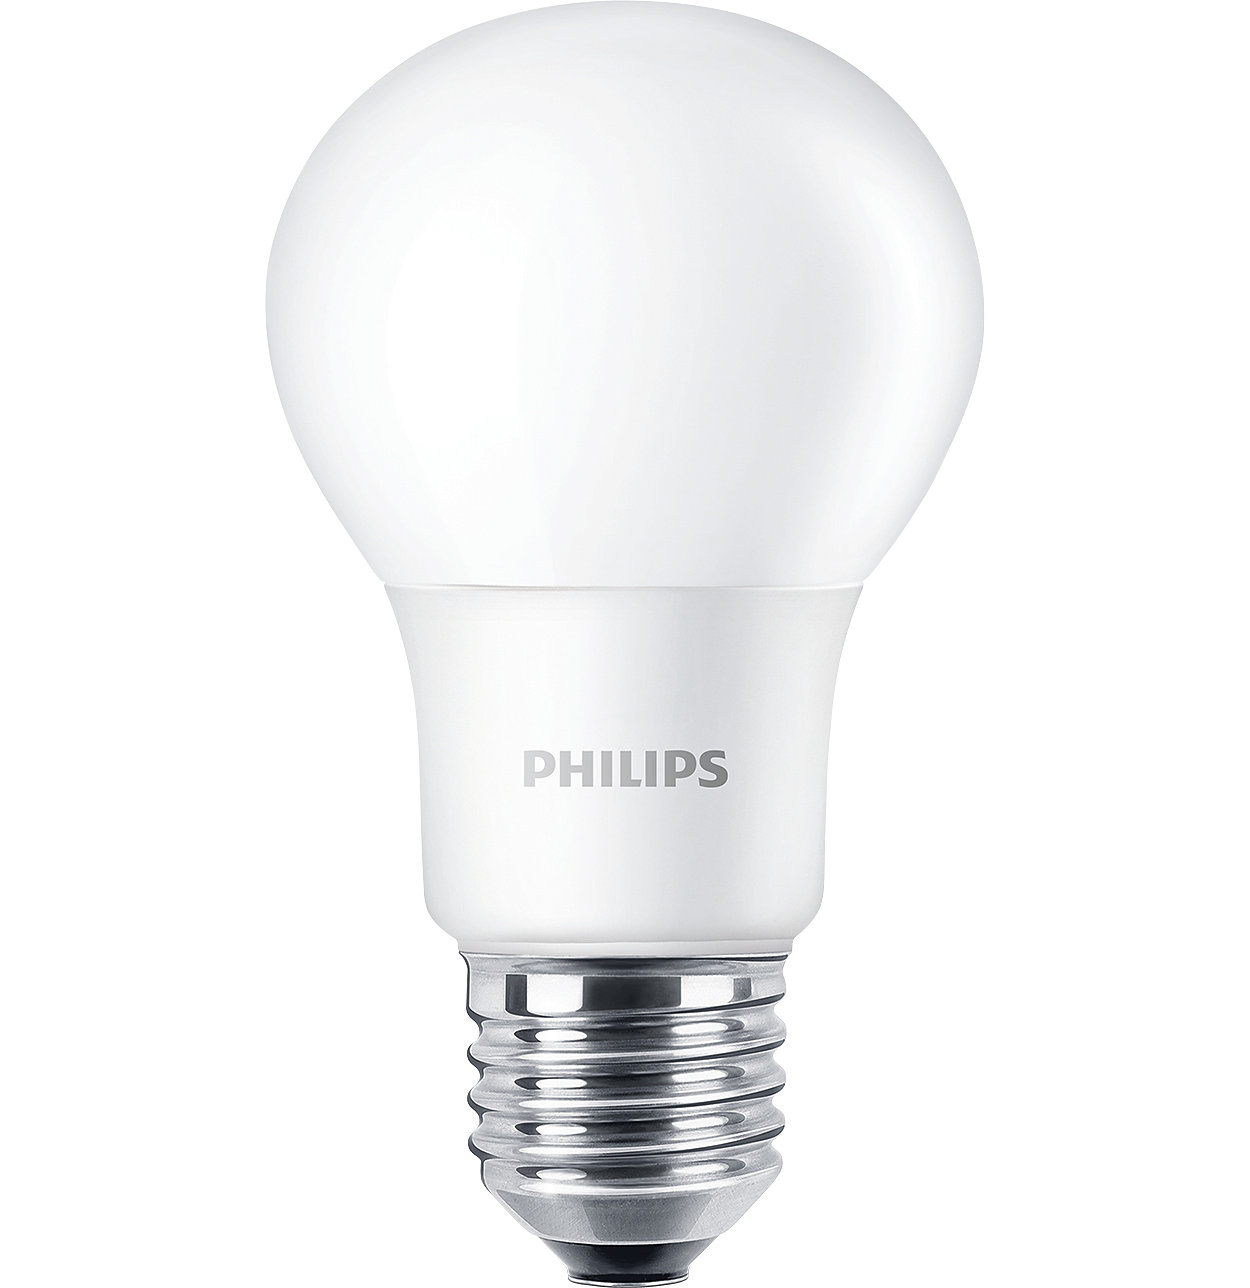 The affordable LED bulb solution